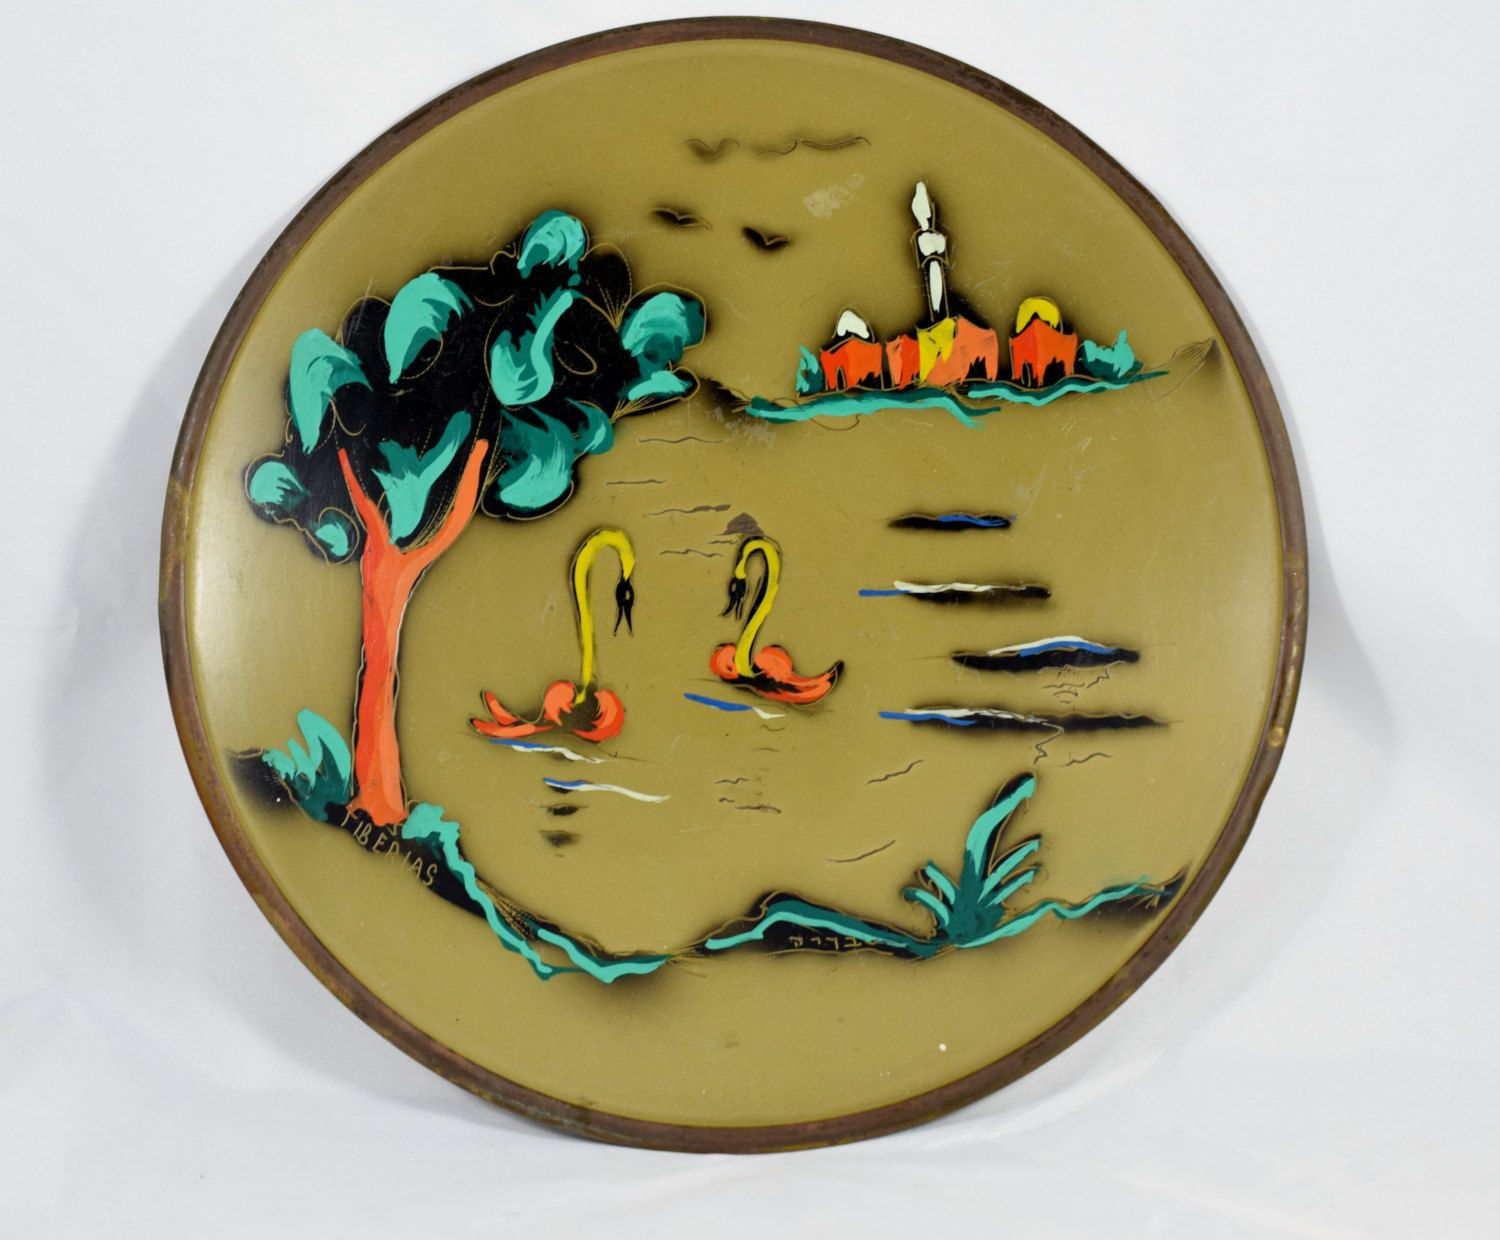 Vintage 50\'s TIBERIAS ISRAEL Sea of Galilee Hand-Painted Brass Plate ...